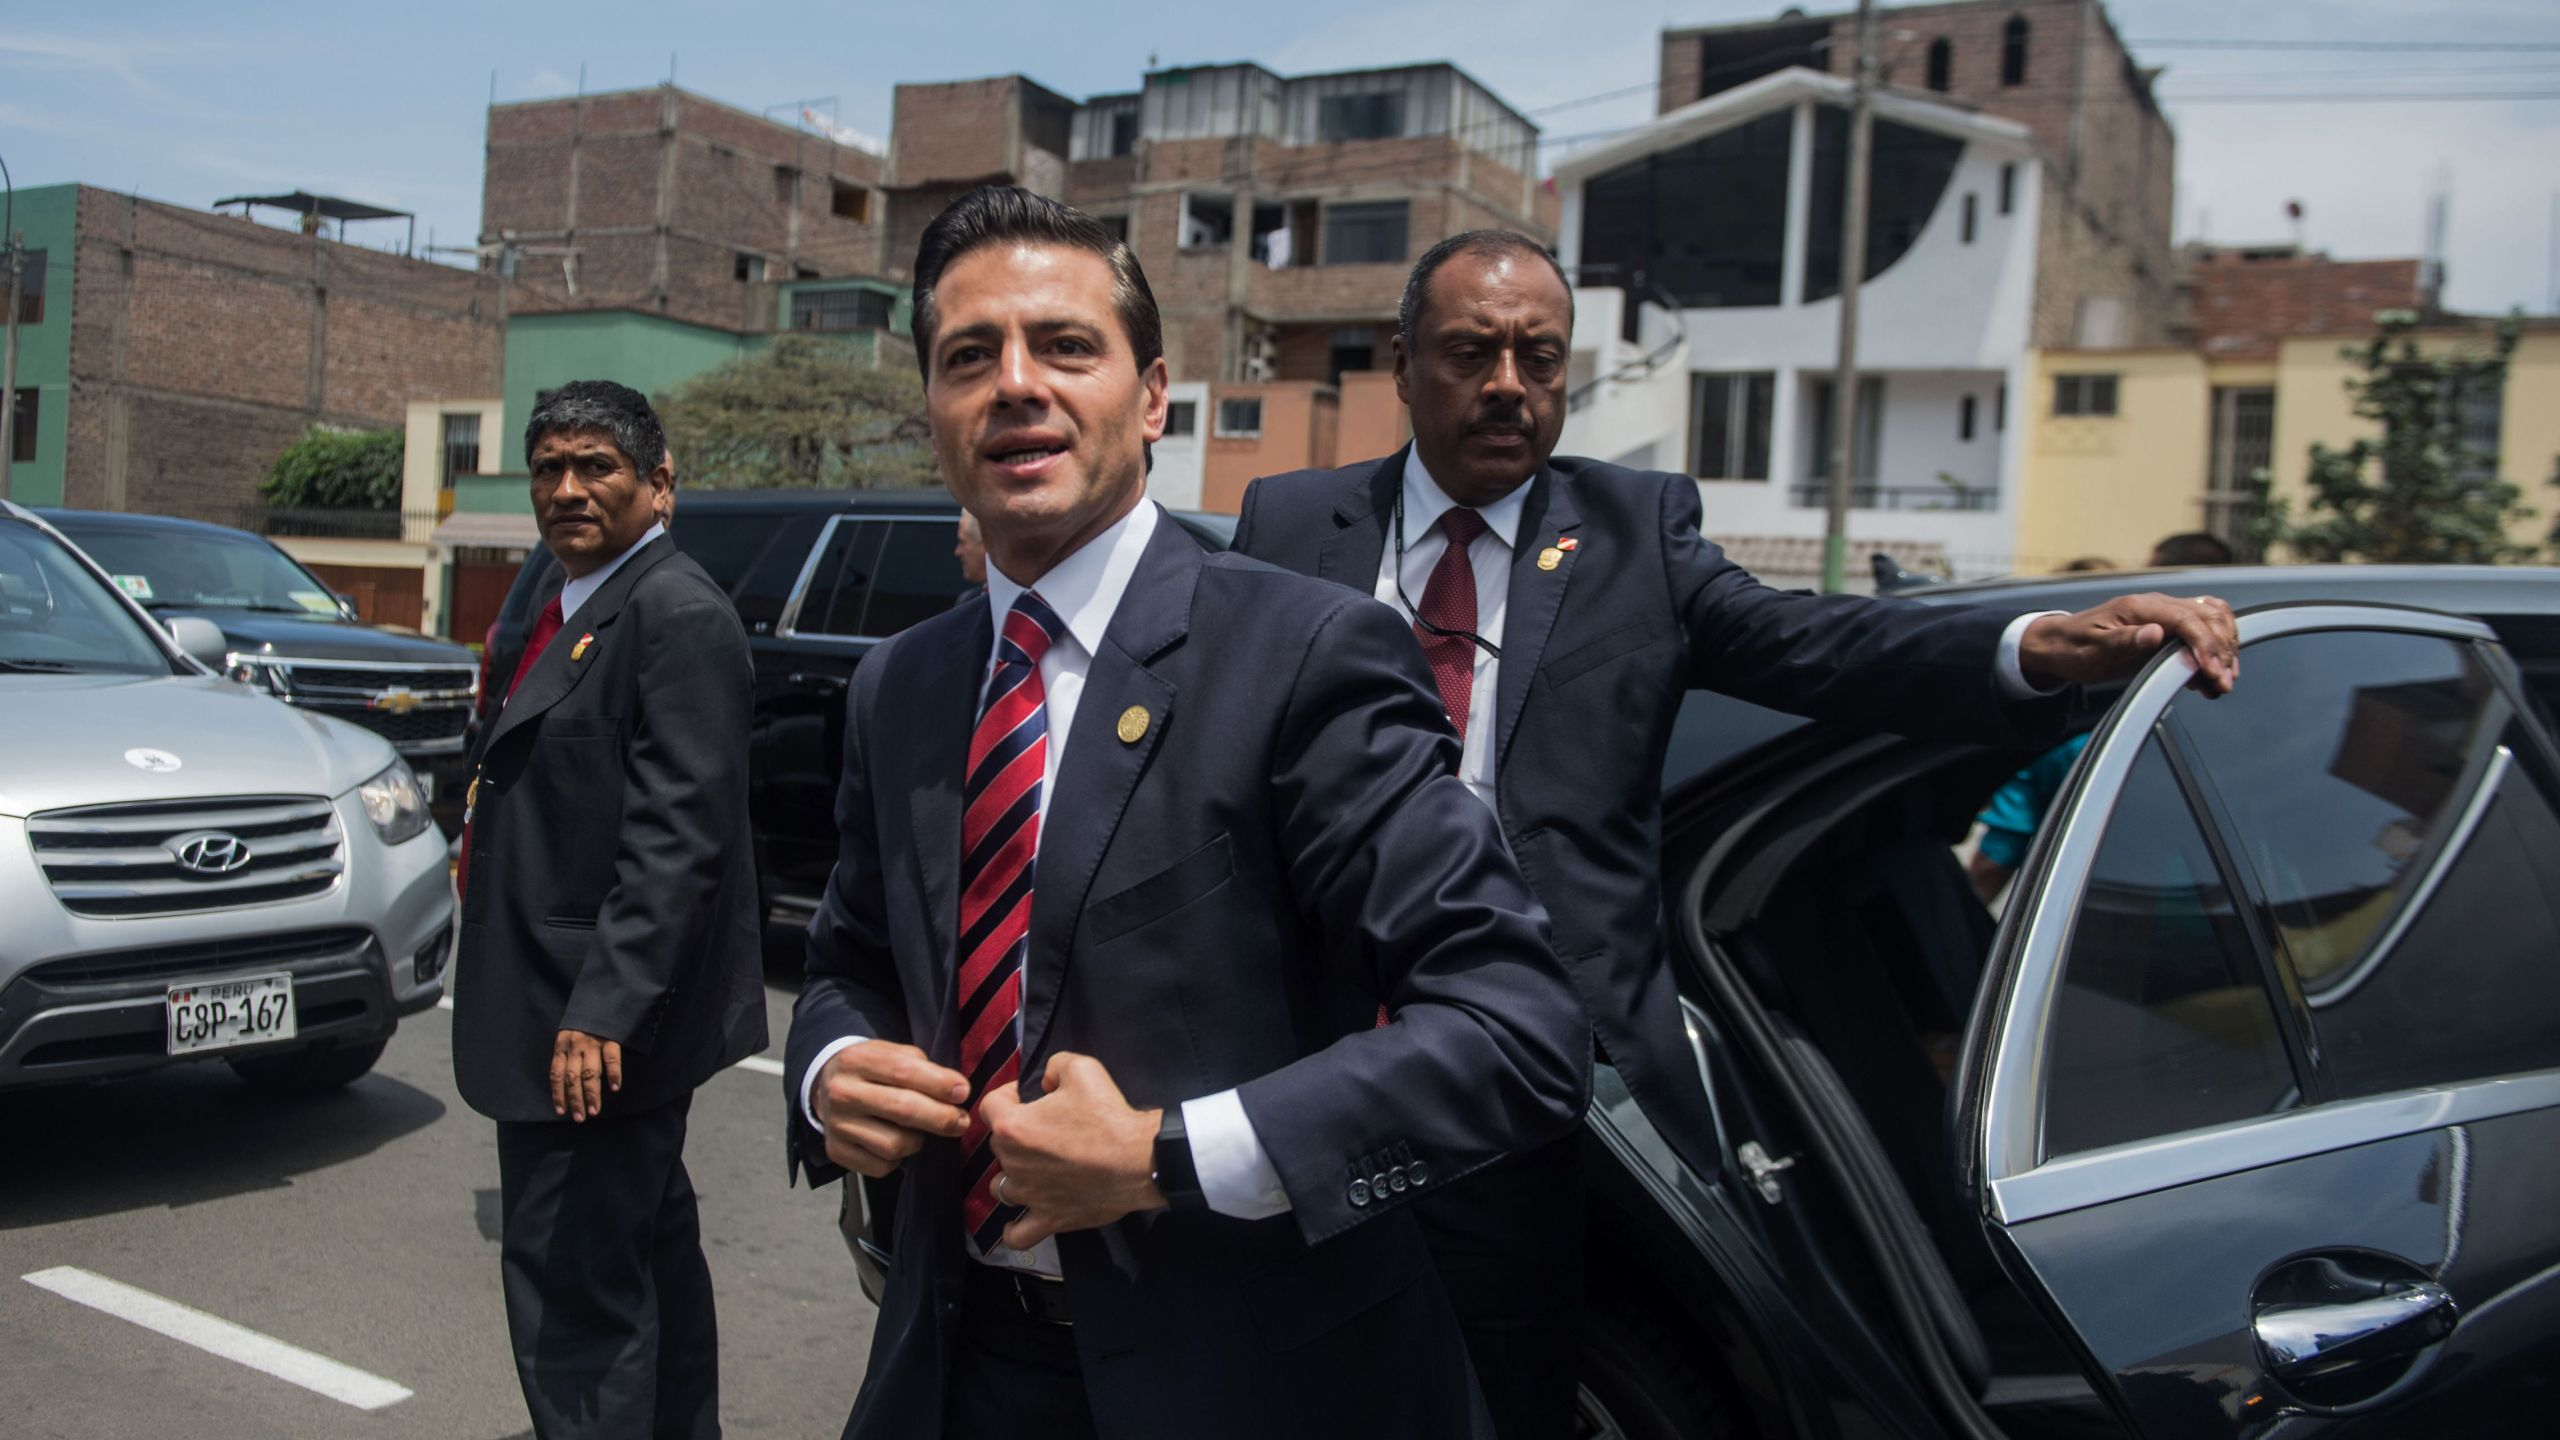 Former Mexican President Enrique Pena Nieto arrives at at a convention in Lima on Nov. 19, 2016. (Credit: Ernesto Benavides/AFP/Getty Images)